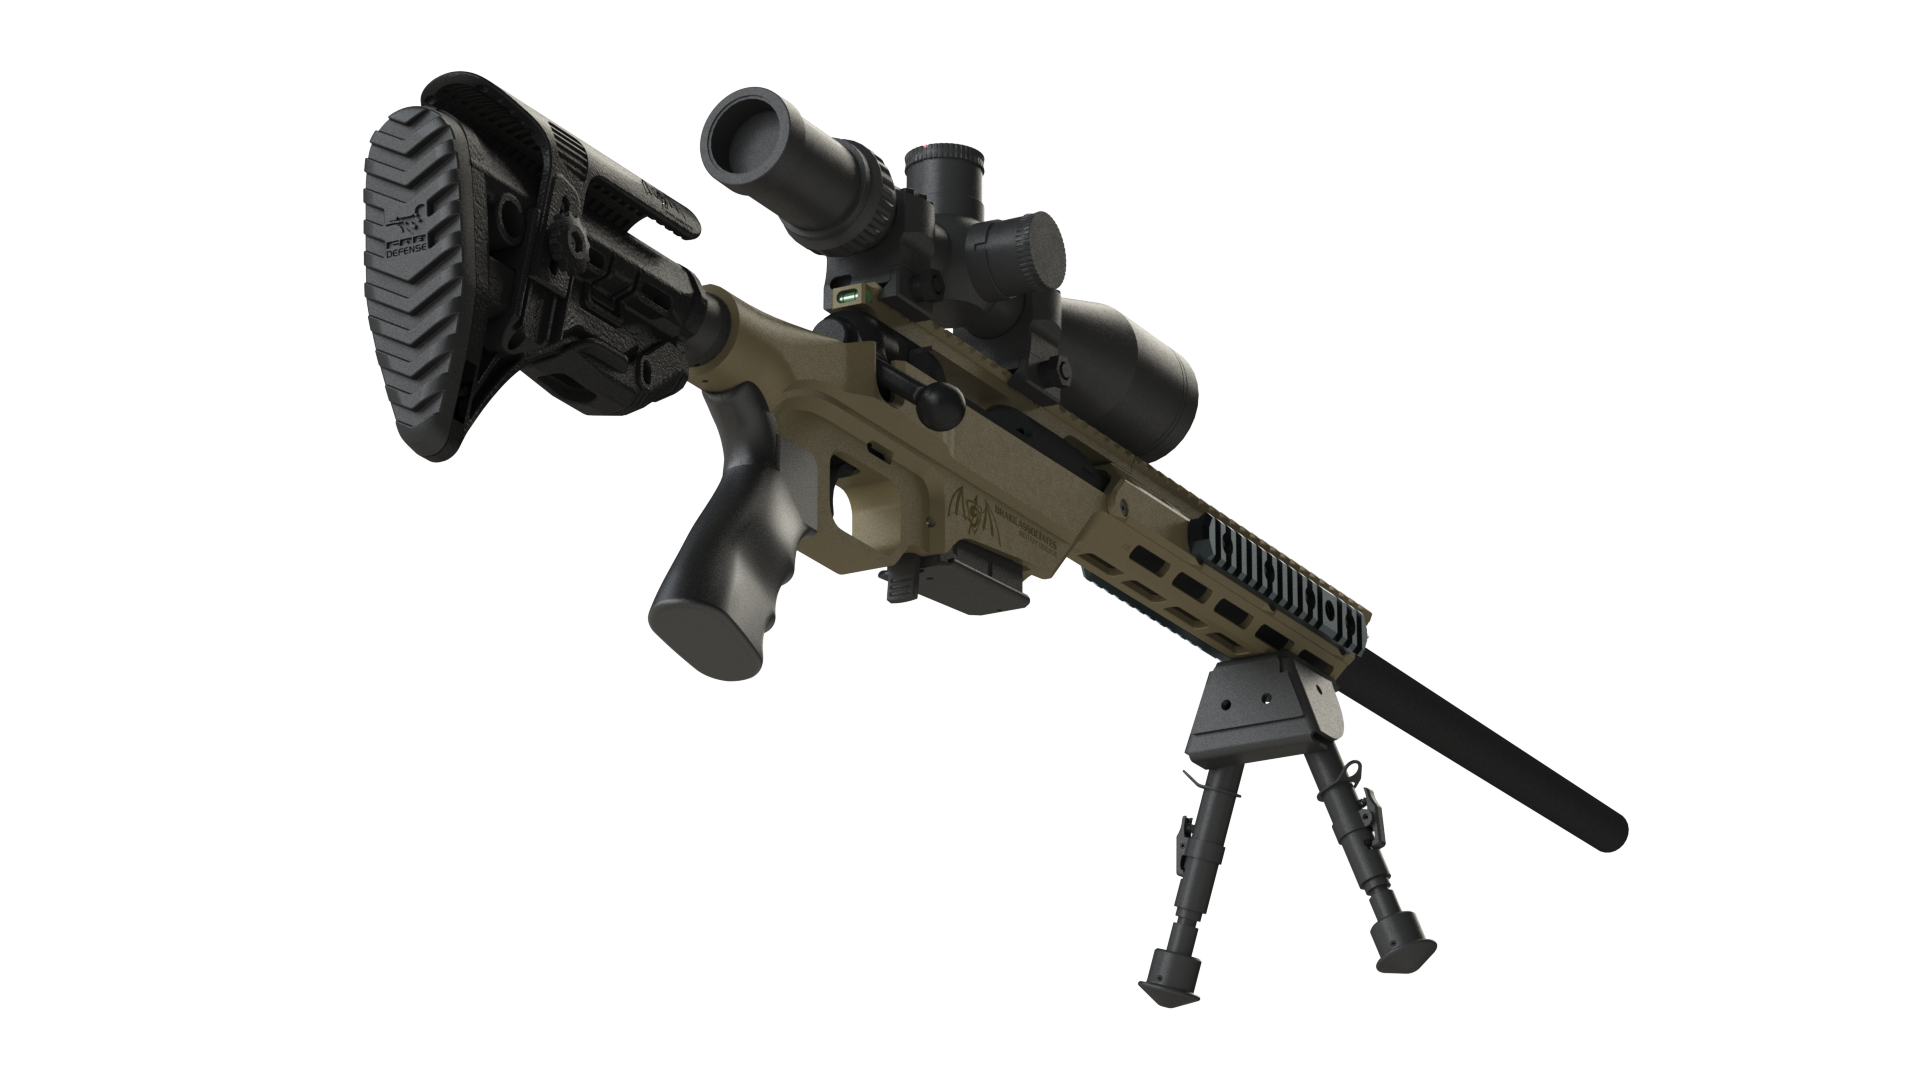 Gun clipart sniper. Animated png image purepng